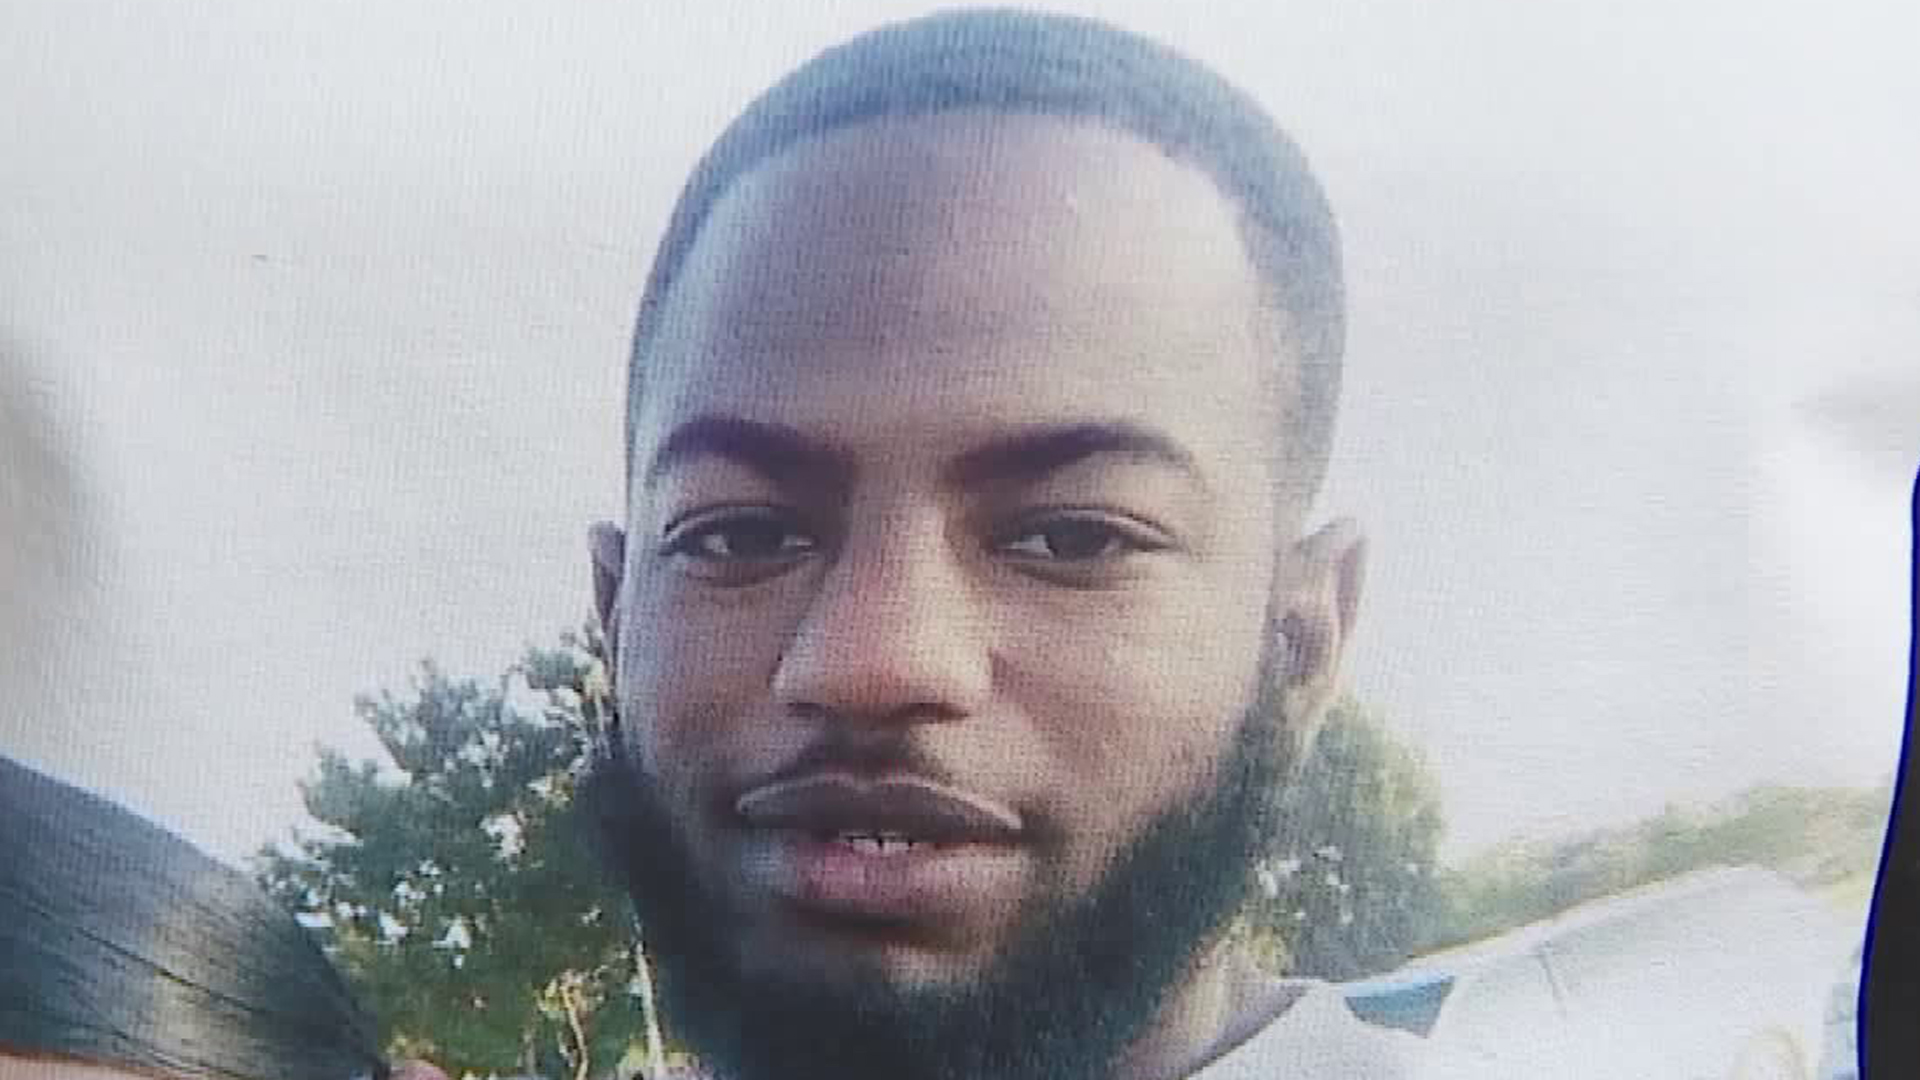 Ryan Twyman, 24, is seen in a photo shown on a T-shirt worn by a person attending a fundraiser for his family in Willowbrook on June 14, 2019. He was fatally shot by sheriff's deputies in the same neighborhood on June 6, 2019. (Credit: KTLA)